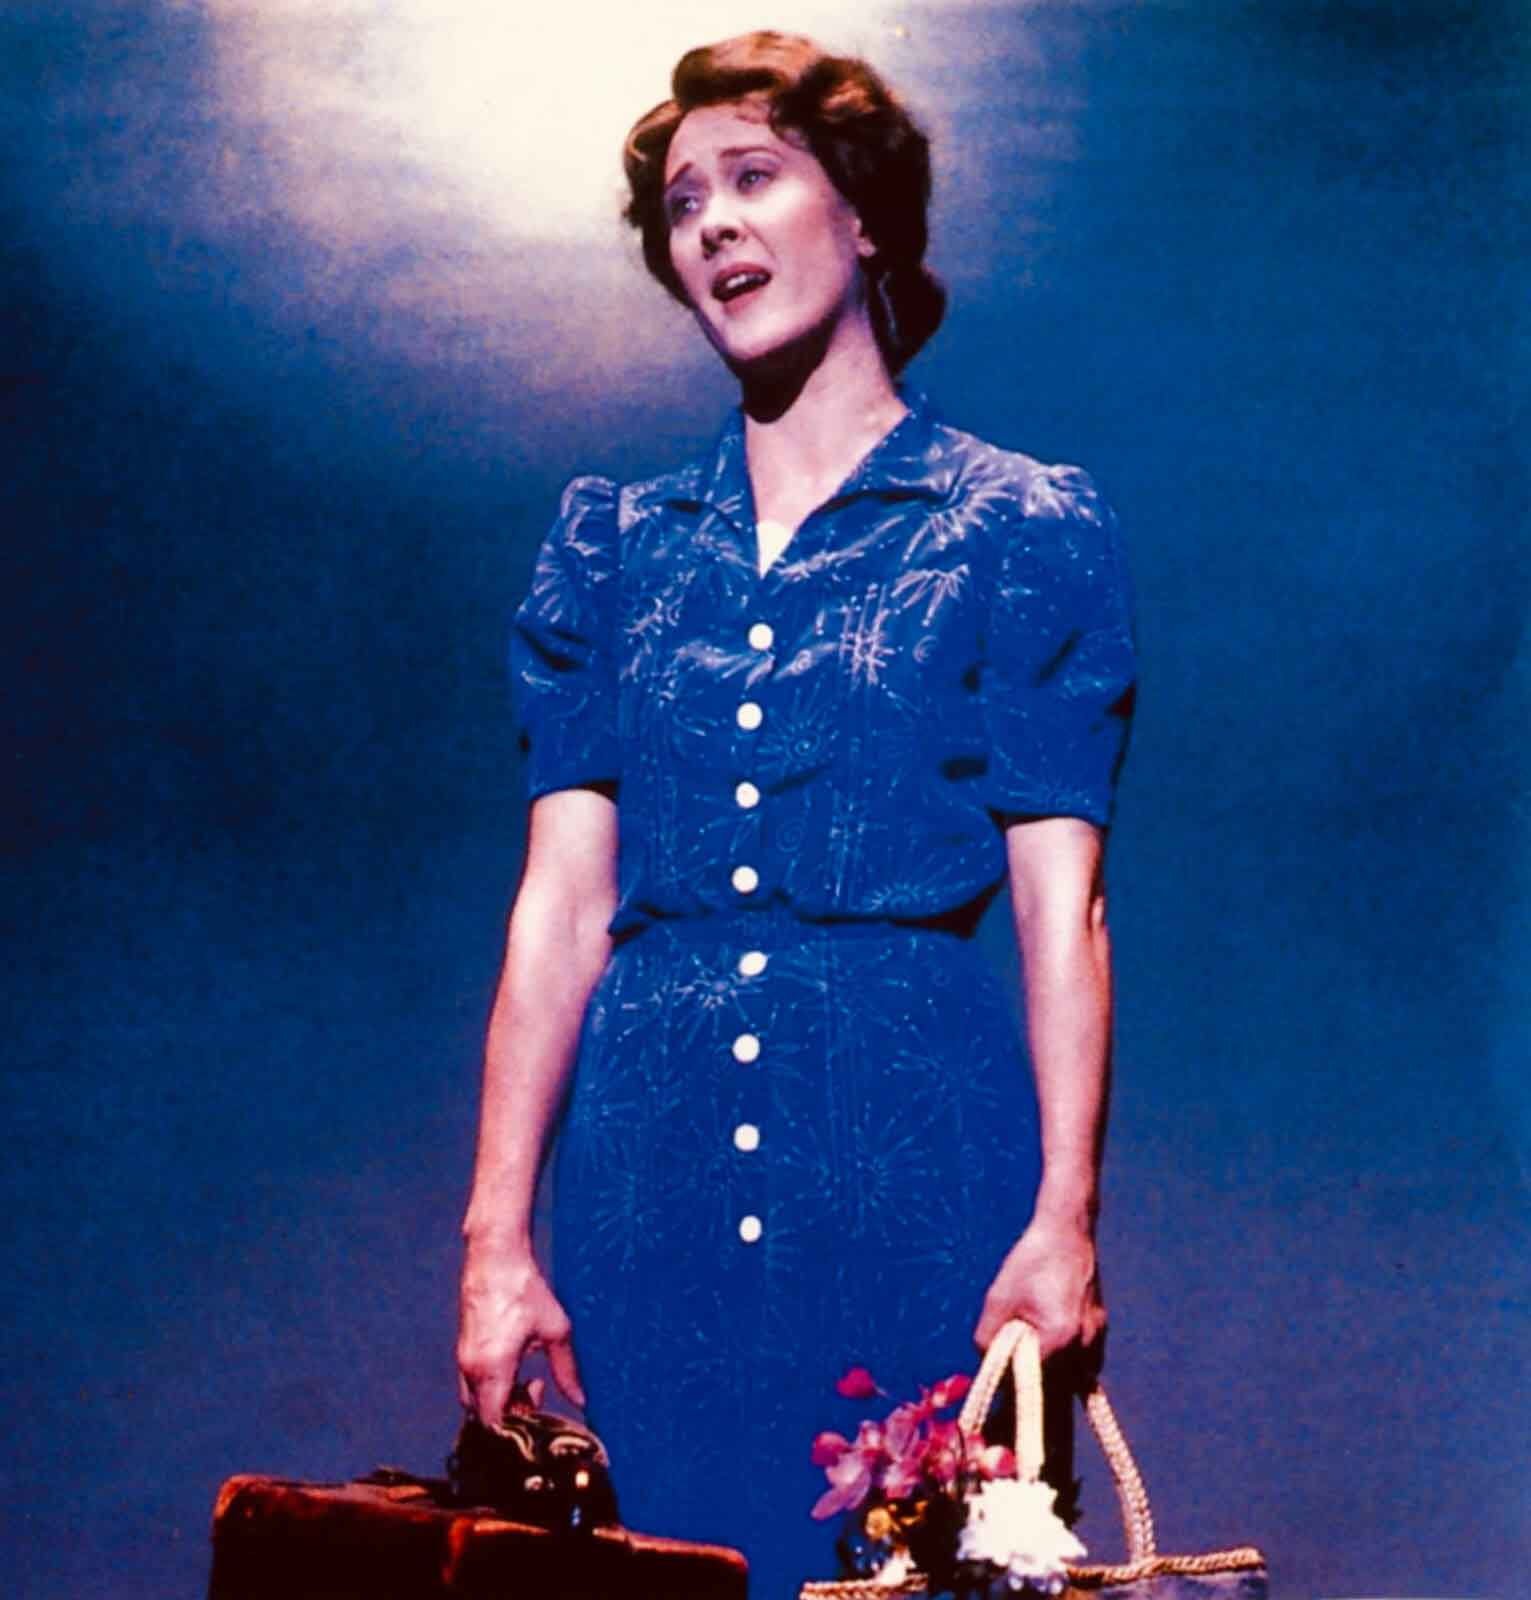 """Karen Ziemba as Lizzie singing """"Simple Little Things"""". She wears a button down blue dress with puffy sleeves, holding luggage and a basket with flowers."""